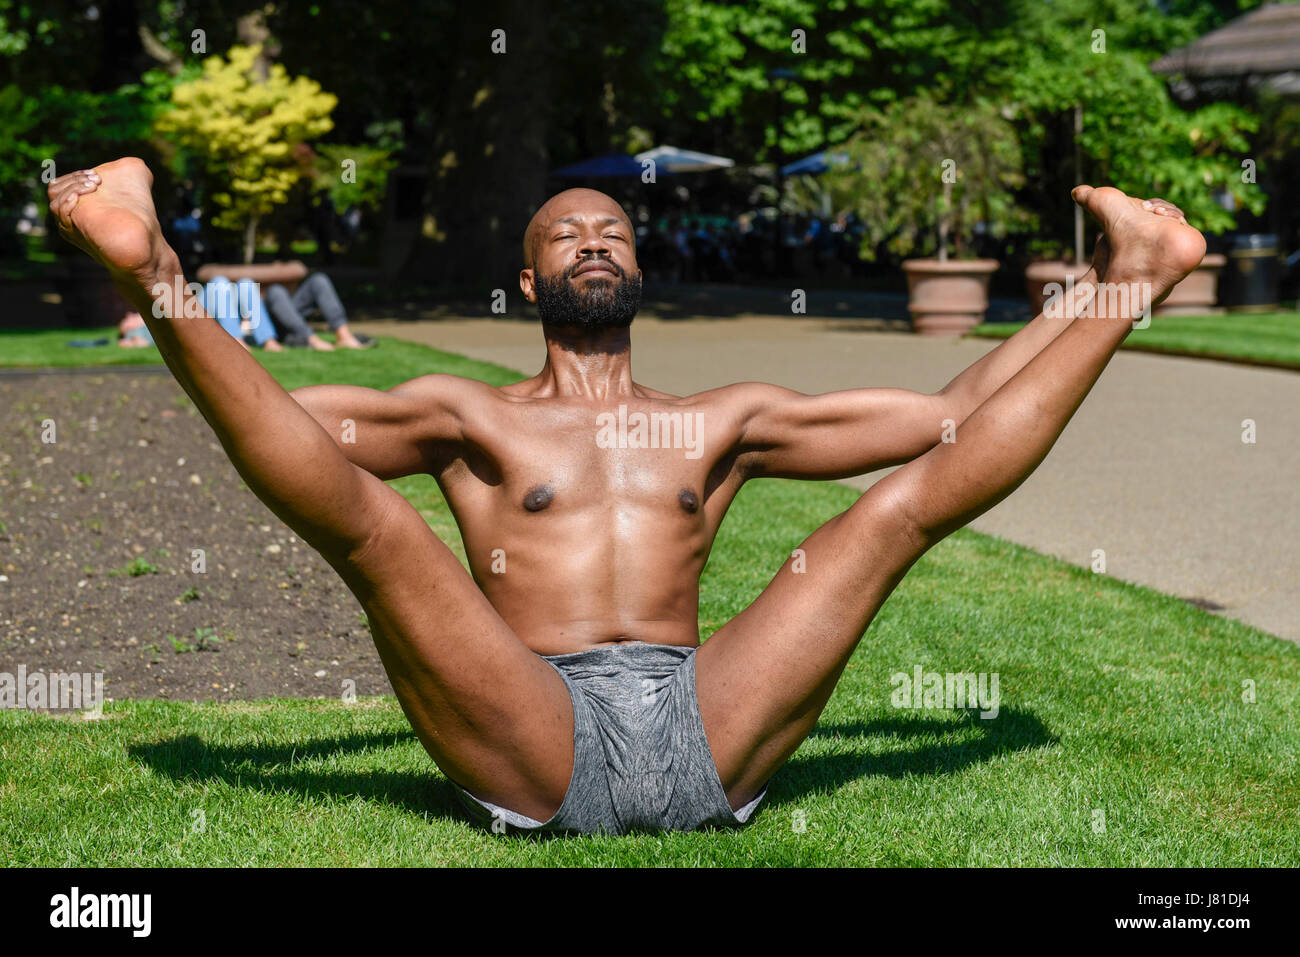 London, UK. 26th May, 2017. Gerrard Martin, a dancer and yoga teacher, practices yoga in the hot weather and bright - Stock Image